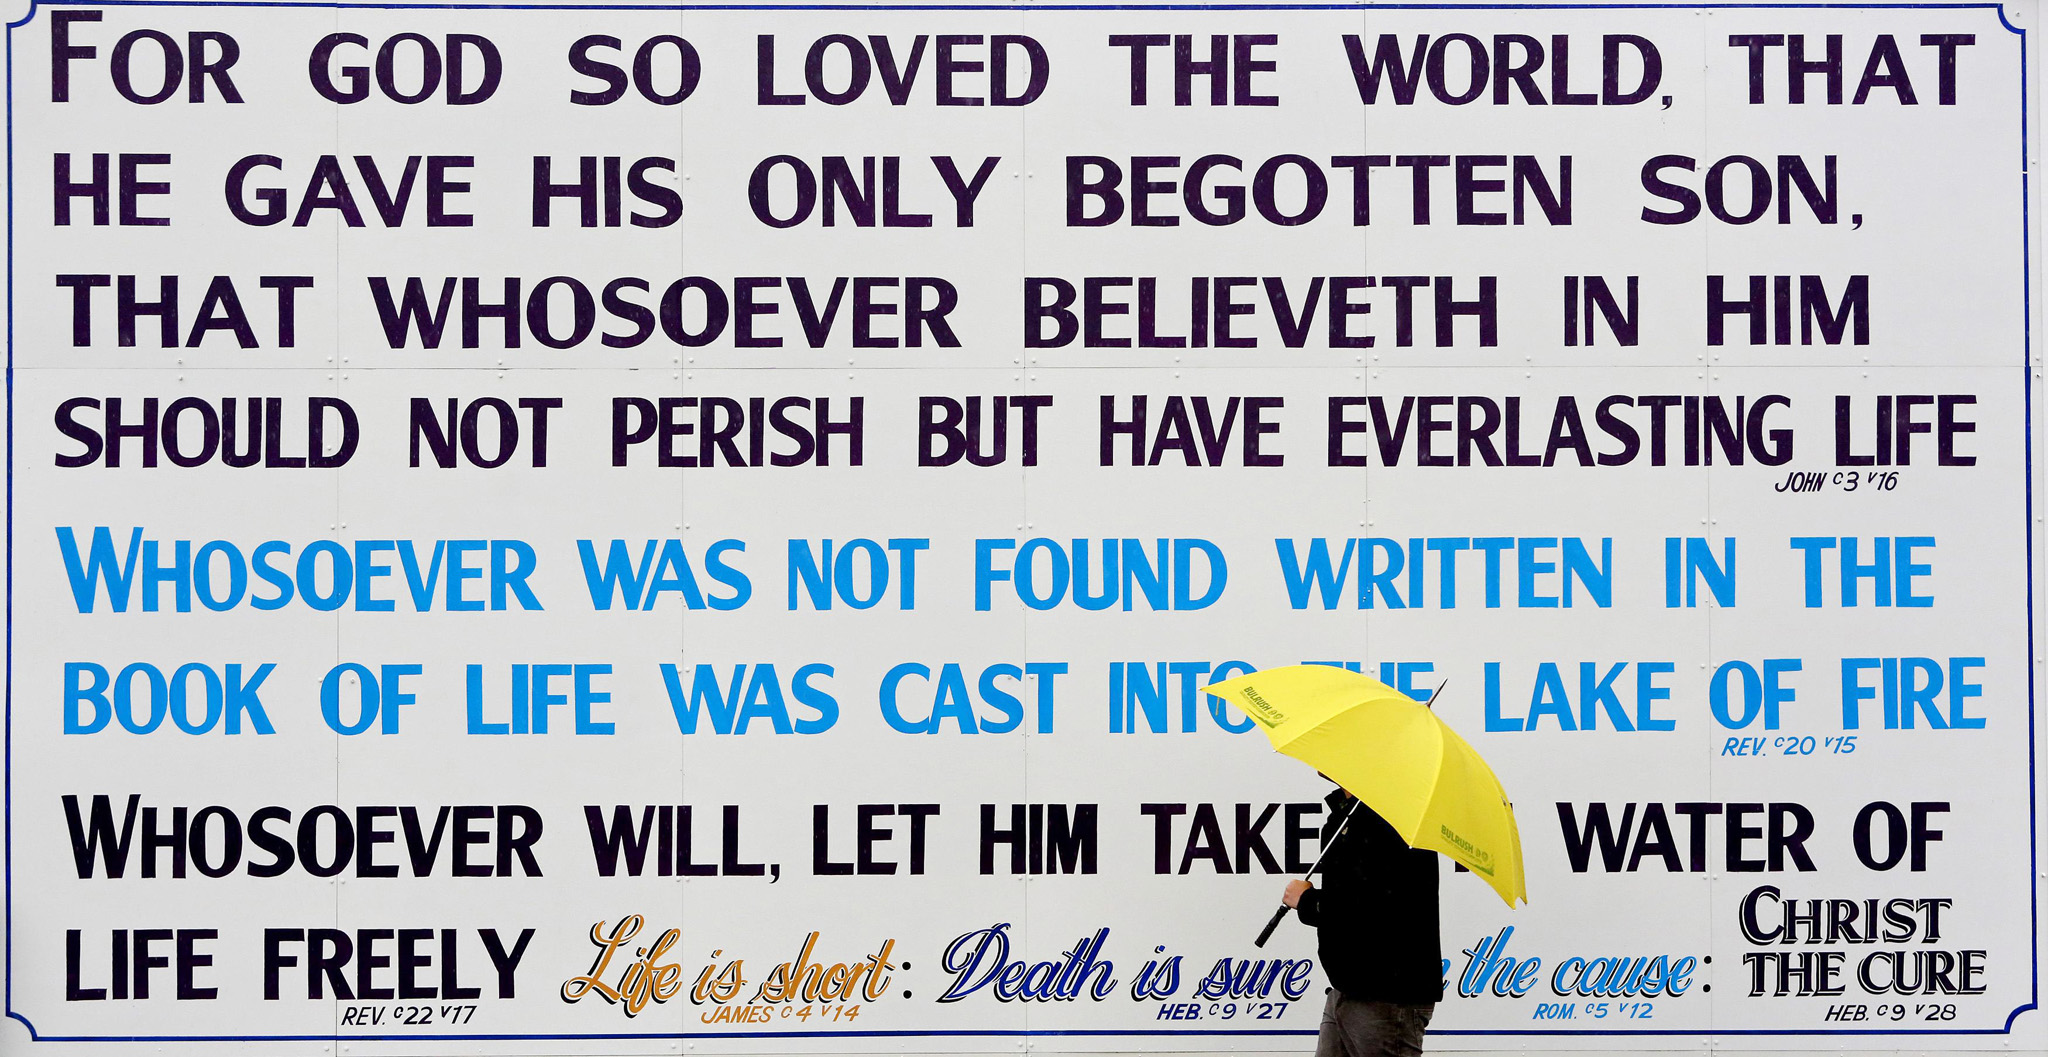 A man walks past religious scripture painted on a wall in the seaside village of Portrush near the Giants Causeway in Northern Ireland...A man walks past religious scripture painted on a wall in the seaside village of Portrush near the Giants Causeway in Northern Ireland October 16, 2013.   REUTERS/Cathal McNaughton